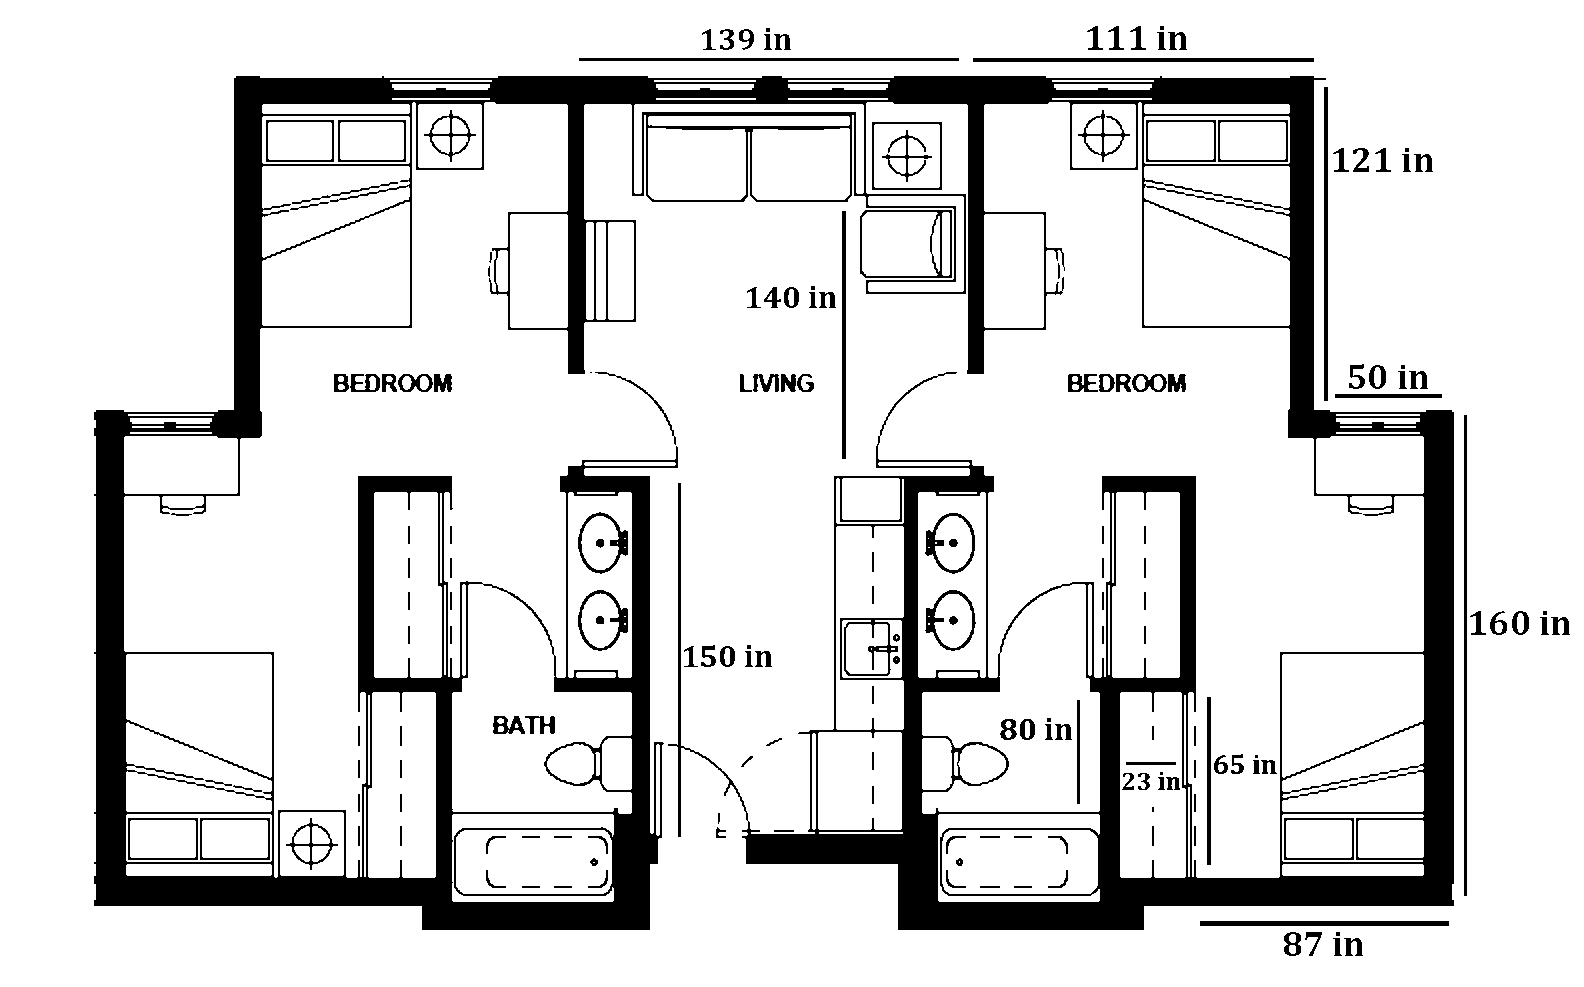 Mcloughlin Double room layout with dimensions